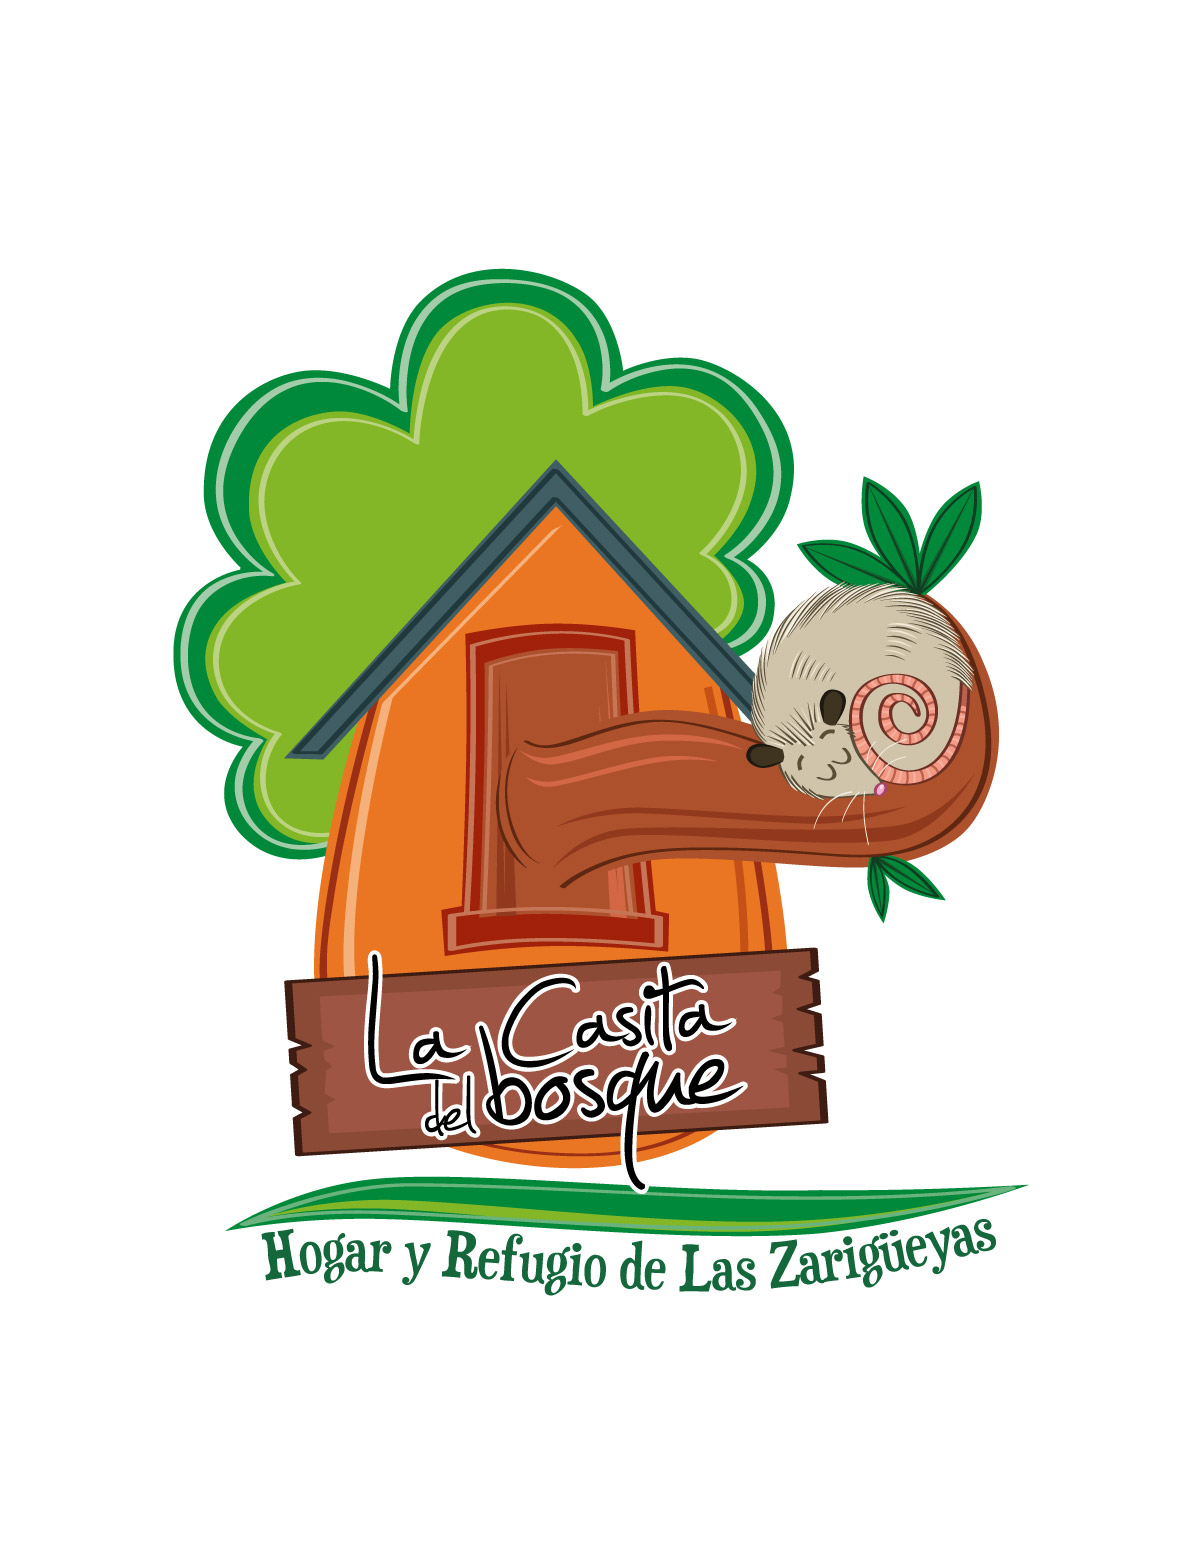 La Casita del bosque